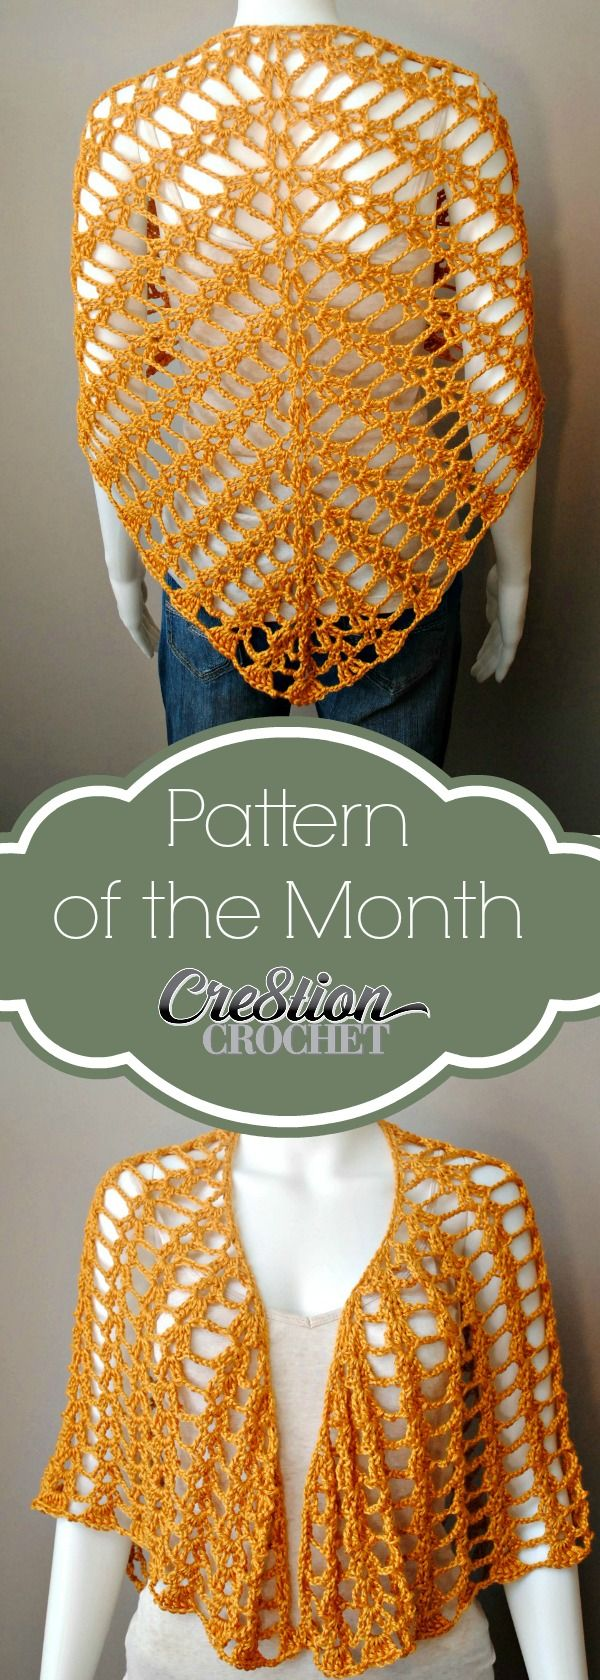 July 2017 Pattern of the Month - Cre8tion Crochet- Free for the month of July ONLY.    This shawl works well with any yarn and is the perfect summer into shawl piece.